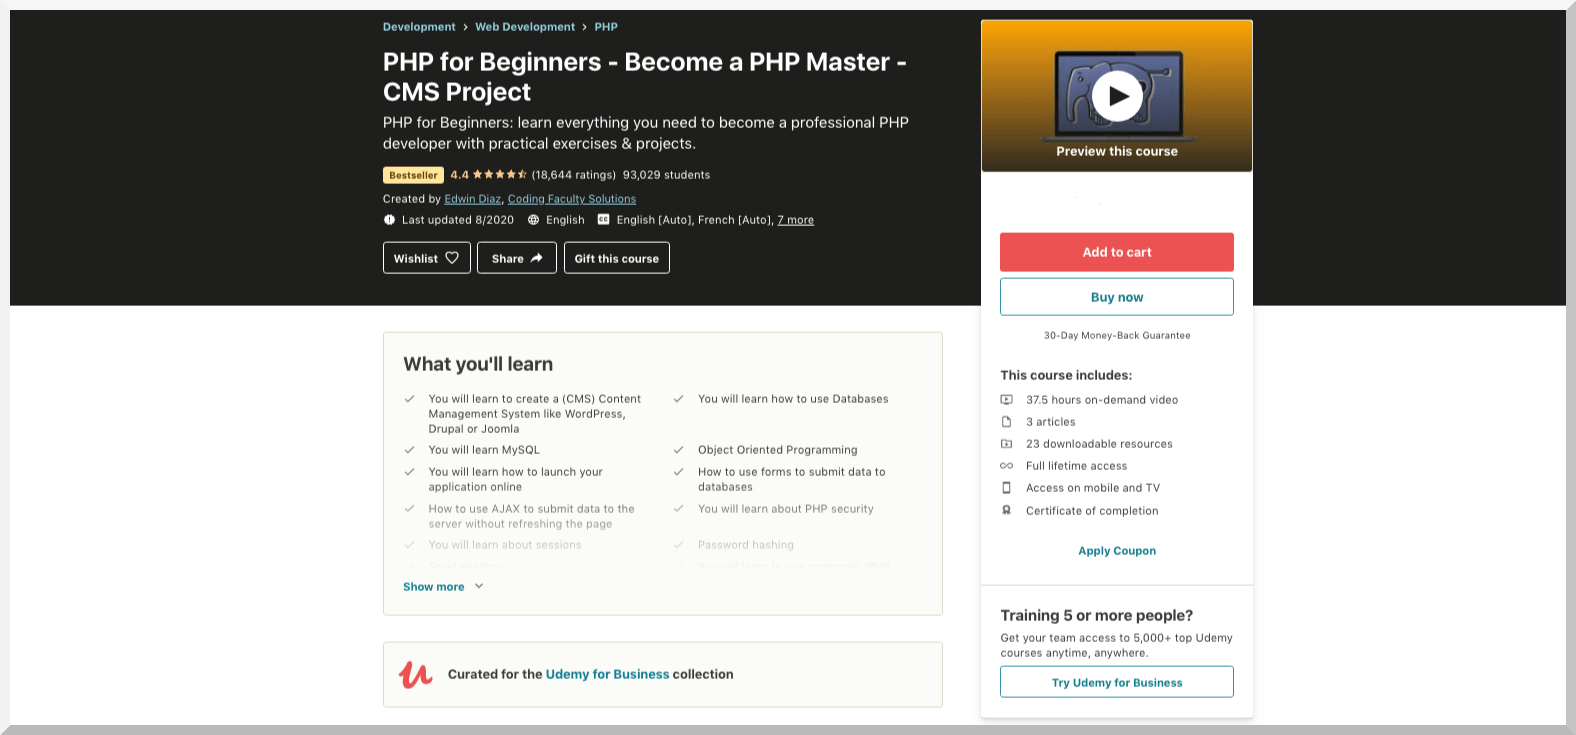 PHP for Beginners- Become a PHP Master CMS Project Udemy